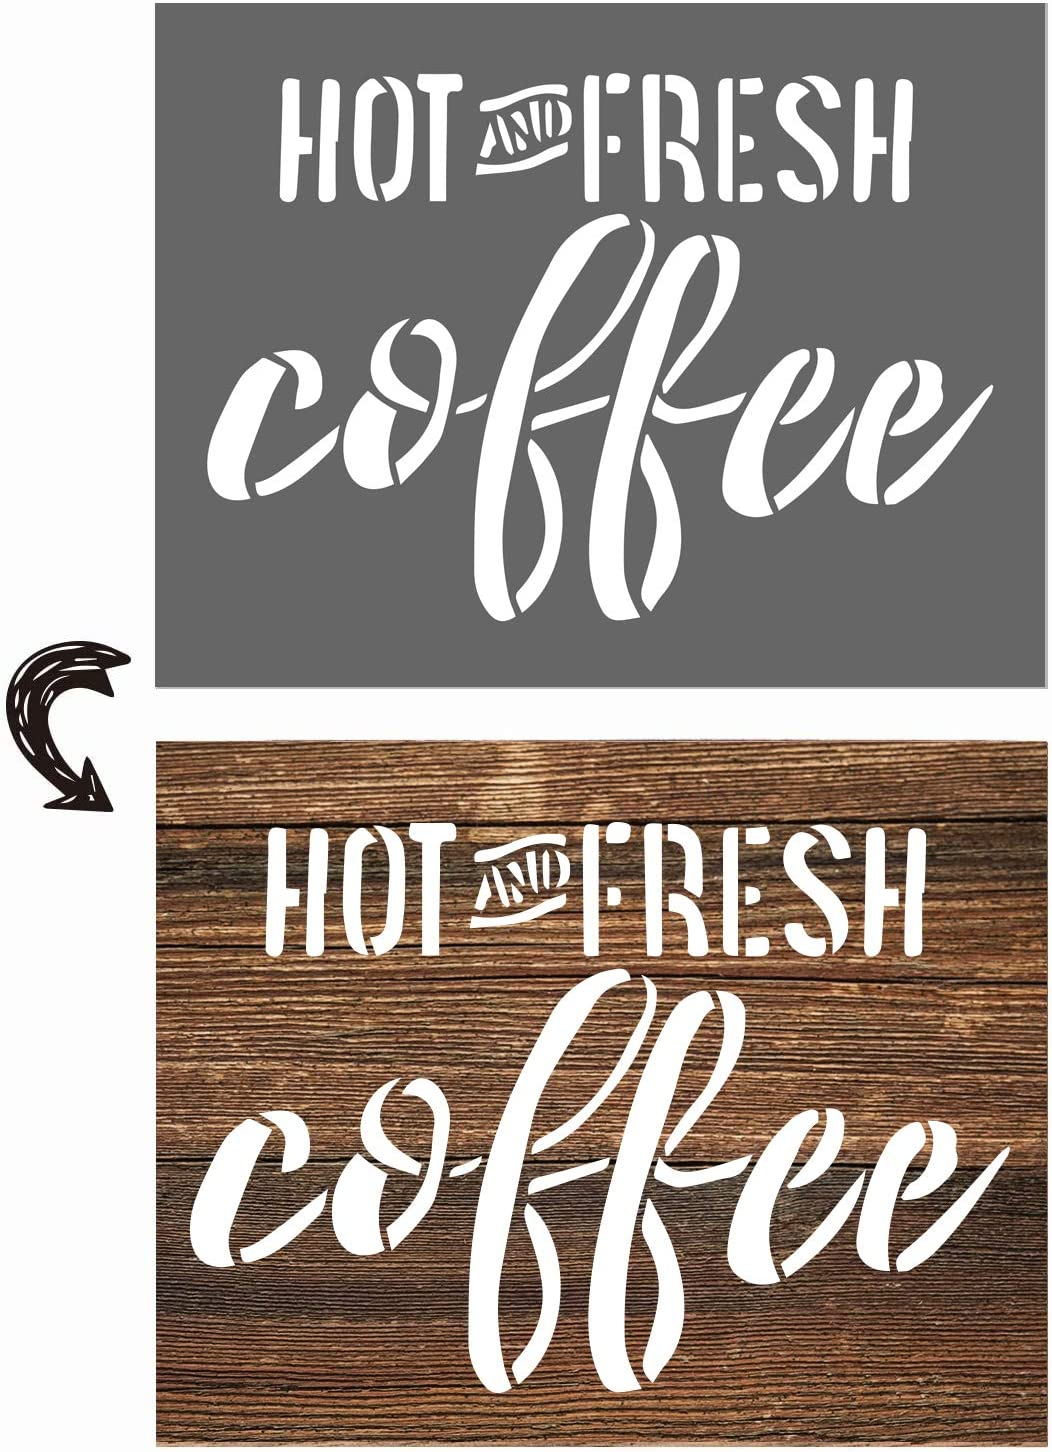 vizuzi Hot Fresh Coffee Sign Stencils - Home Decor Rustic Farmhouse Inspirational Template for Painting Spraying Wood Floors Furniture Paper Window Glass Door Wall Sign Crafts